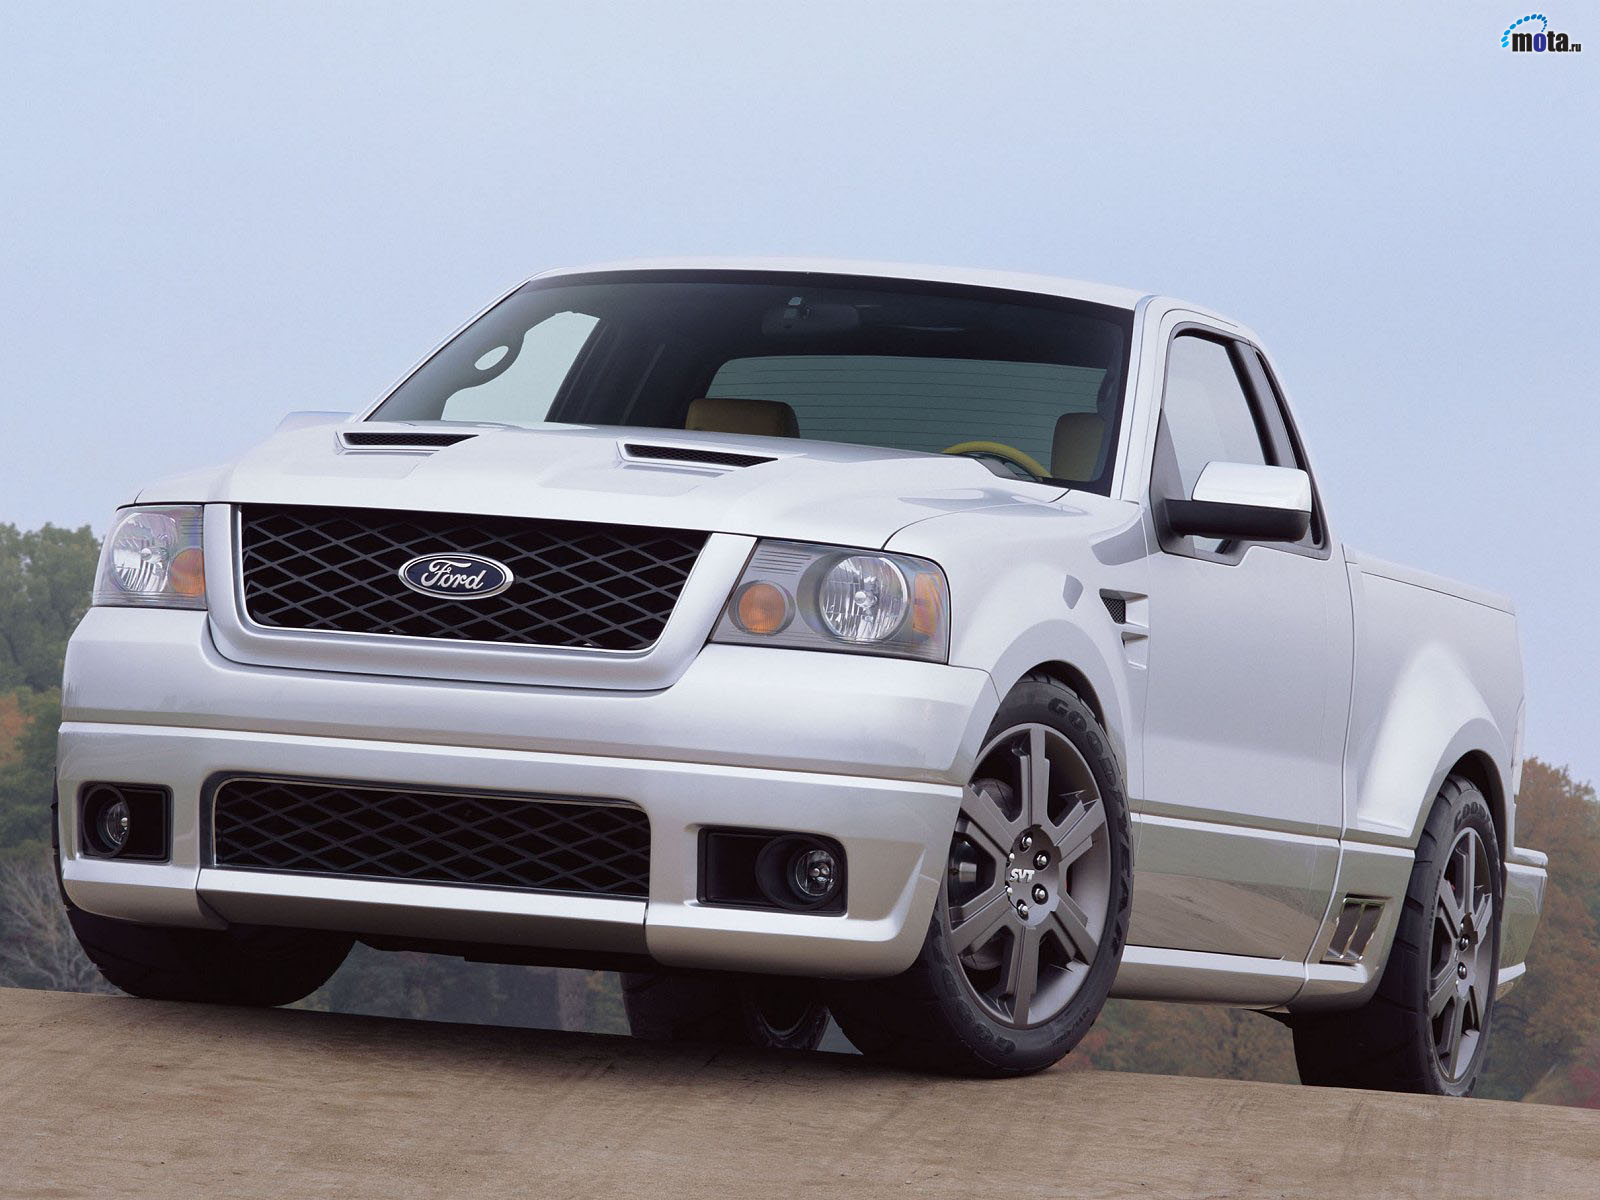 Download Ford Pickups wallpaper Ford Pickup 5 1600x1200